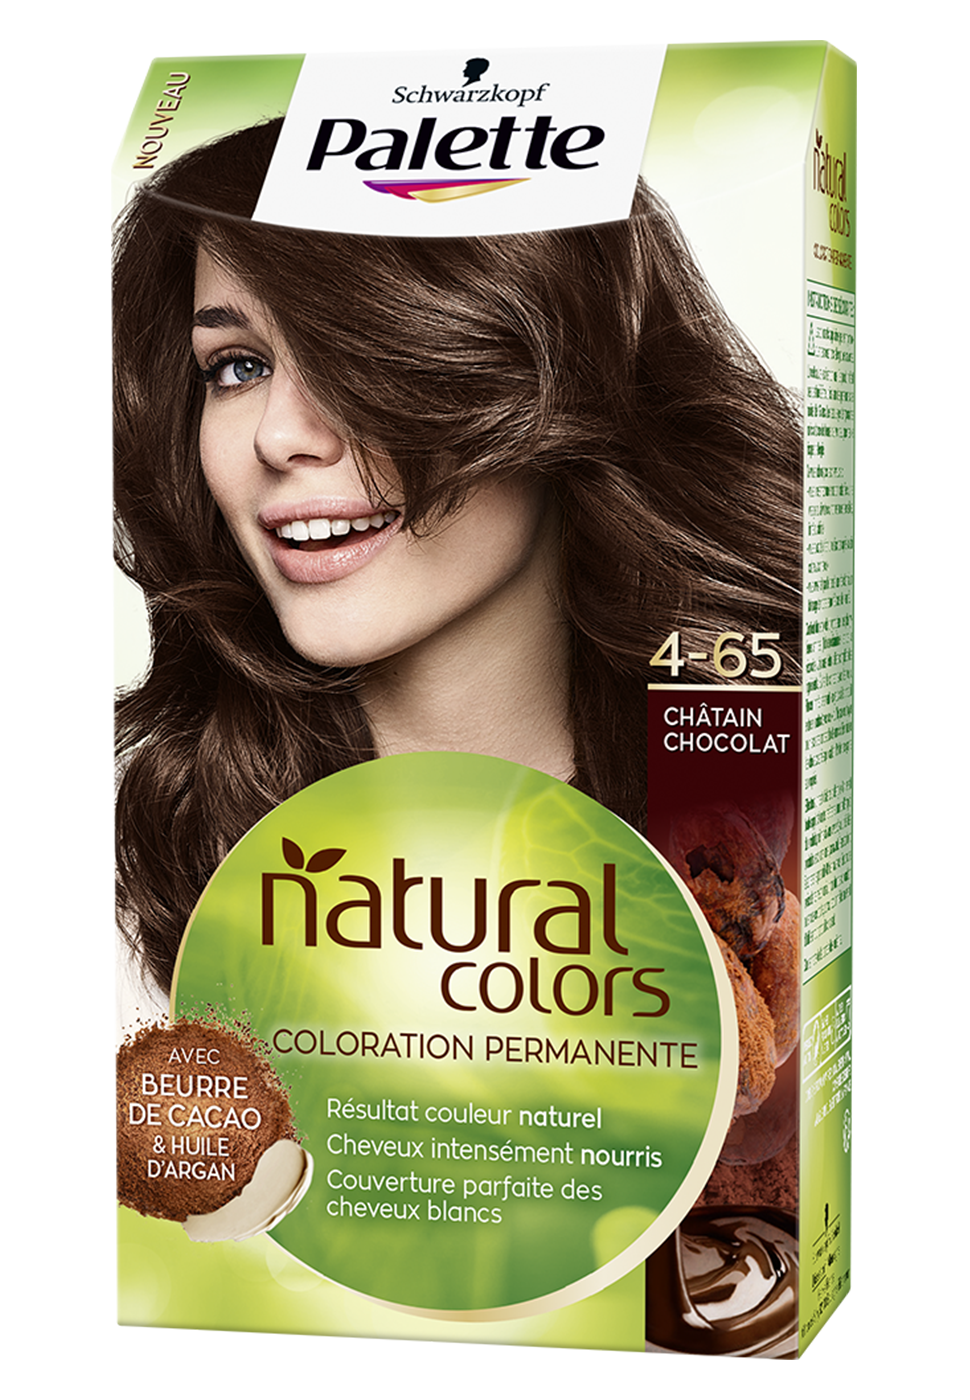 palette-natural-colors-4-65-chatain-chocolat